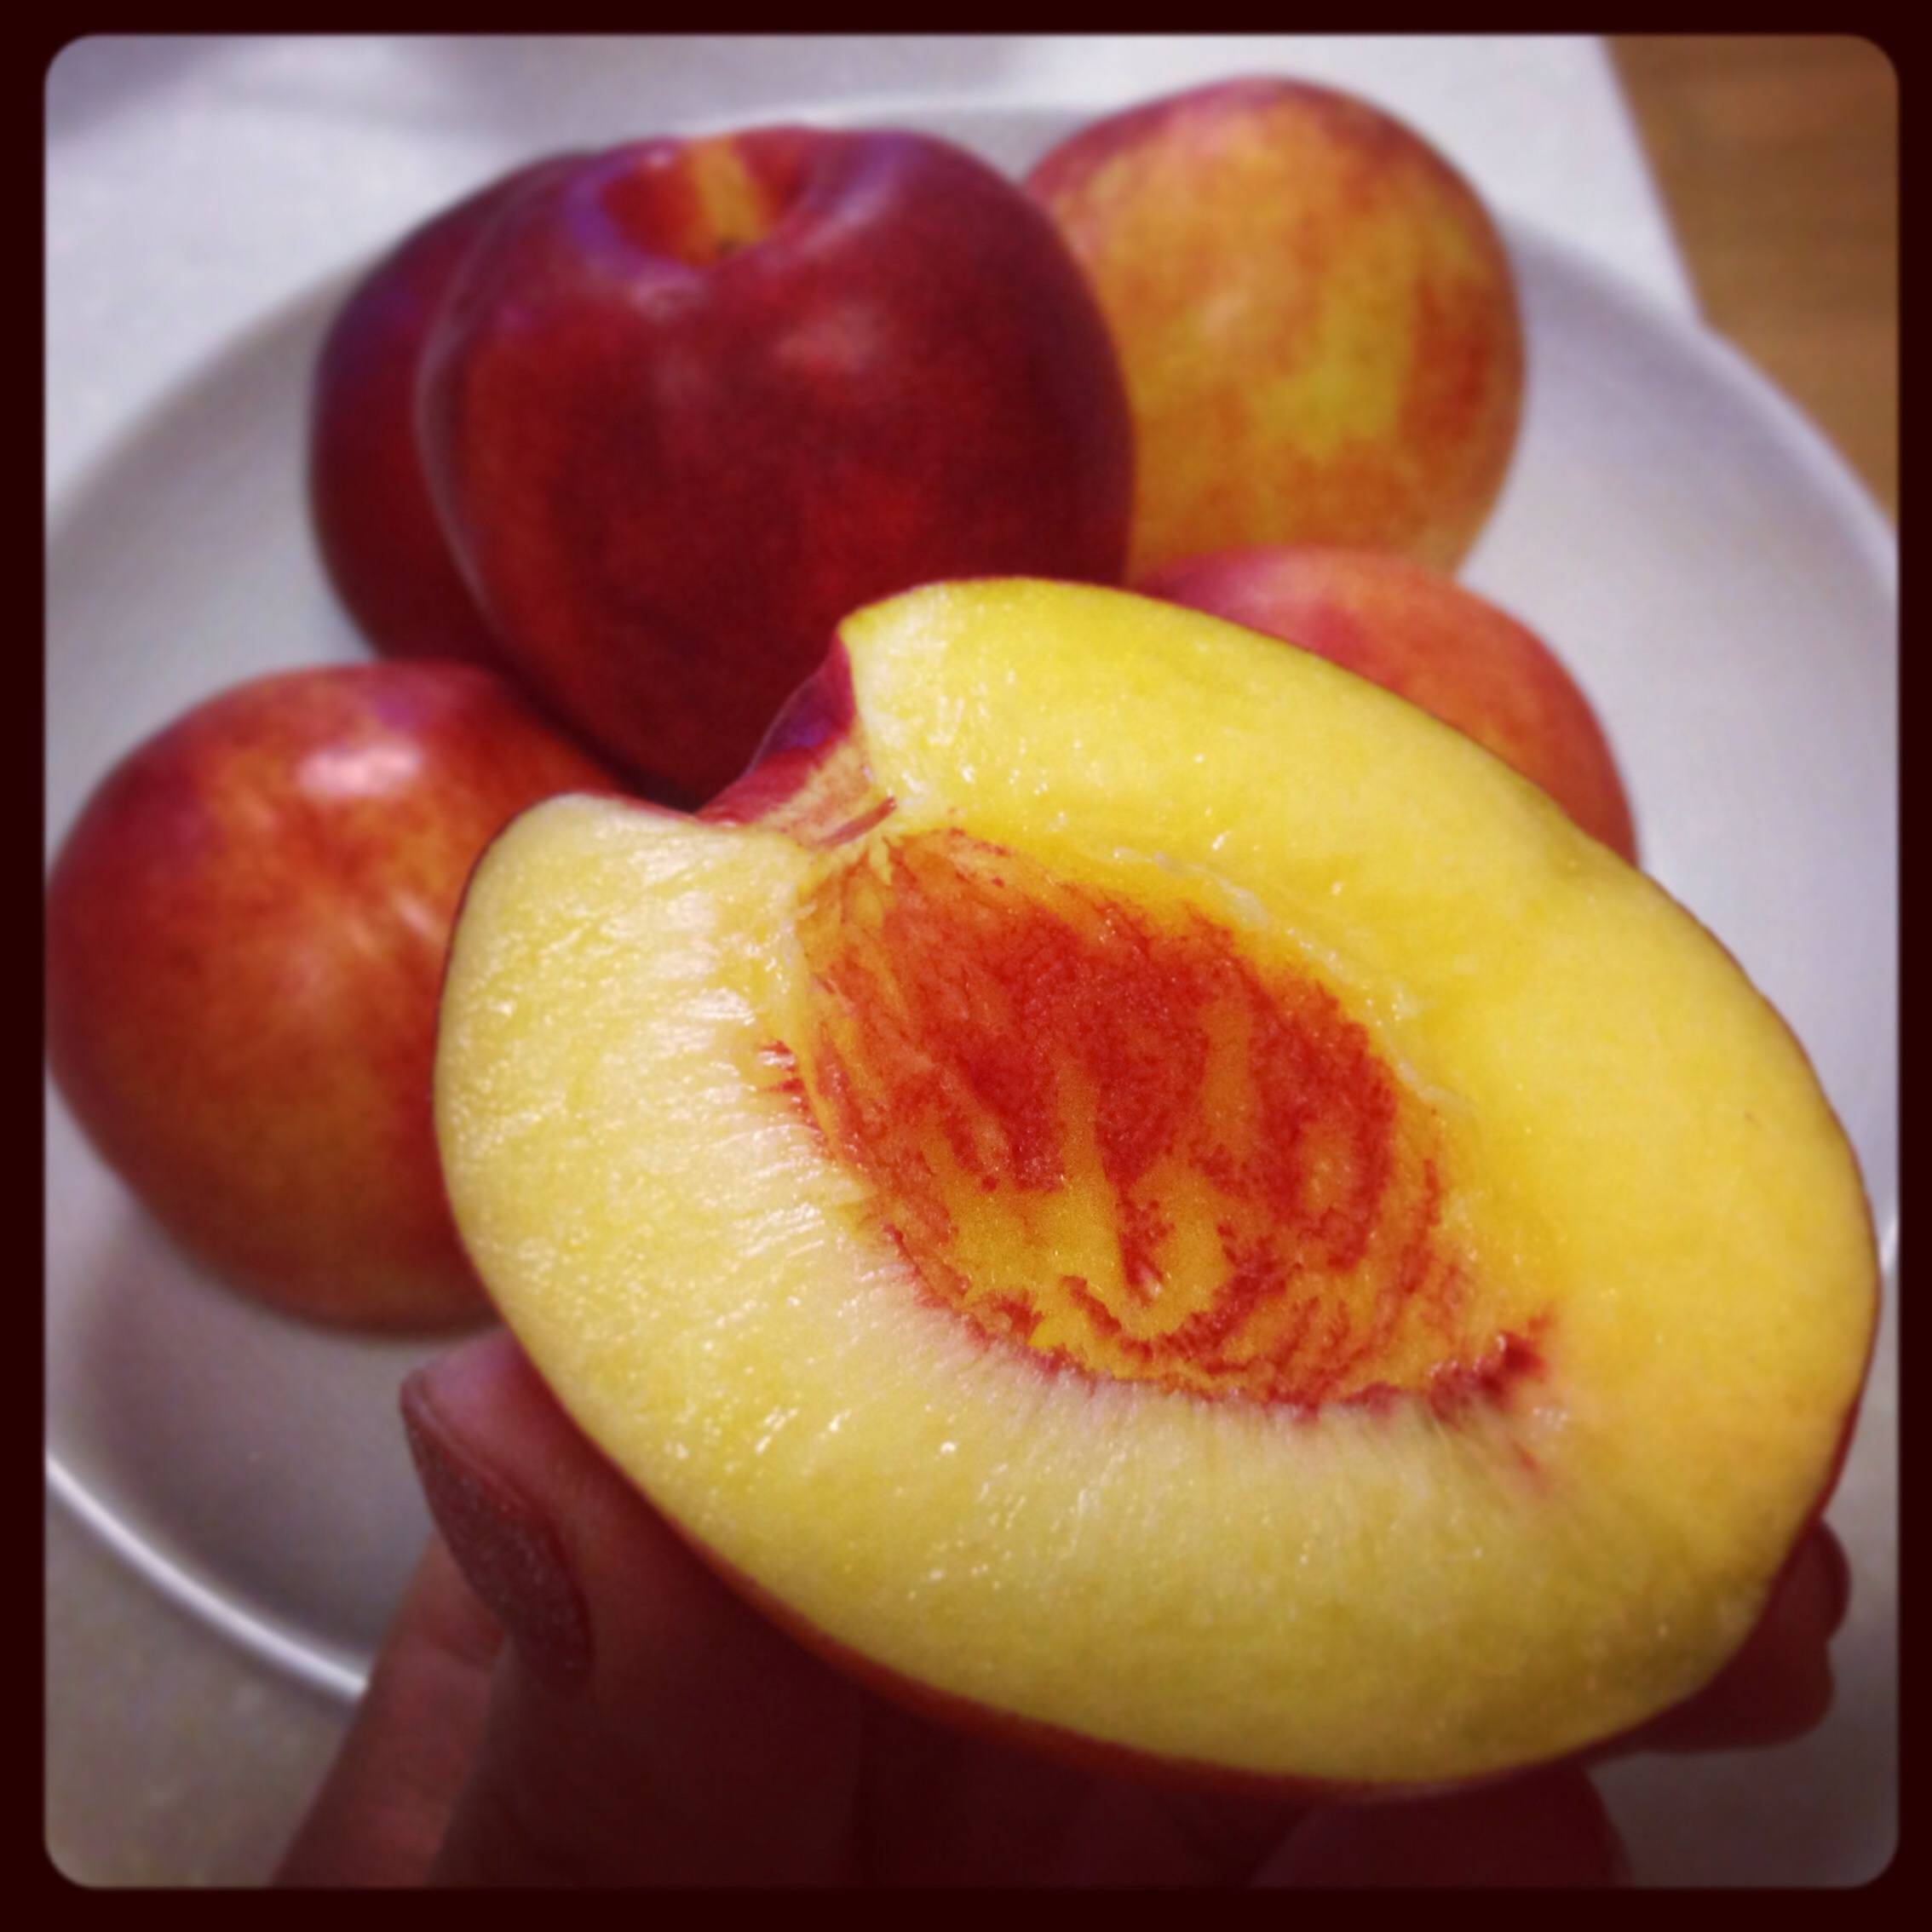 These were also from my downstairs C&U convenient store and only cost 3800won for 6! I need to leave some to soften up and ripen, but the ones that were ripe were juicy, sweet and delicious - not as juicy as the peach, but still good.